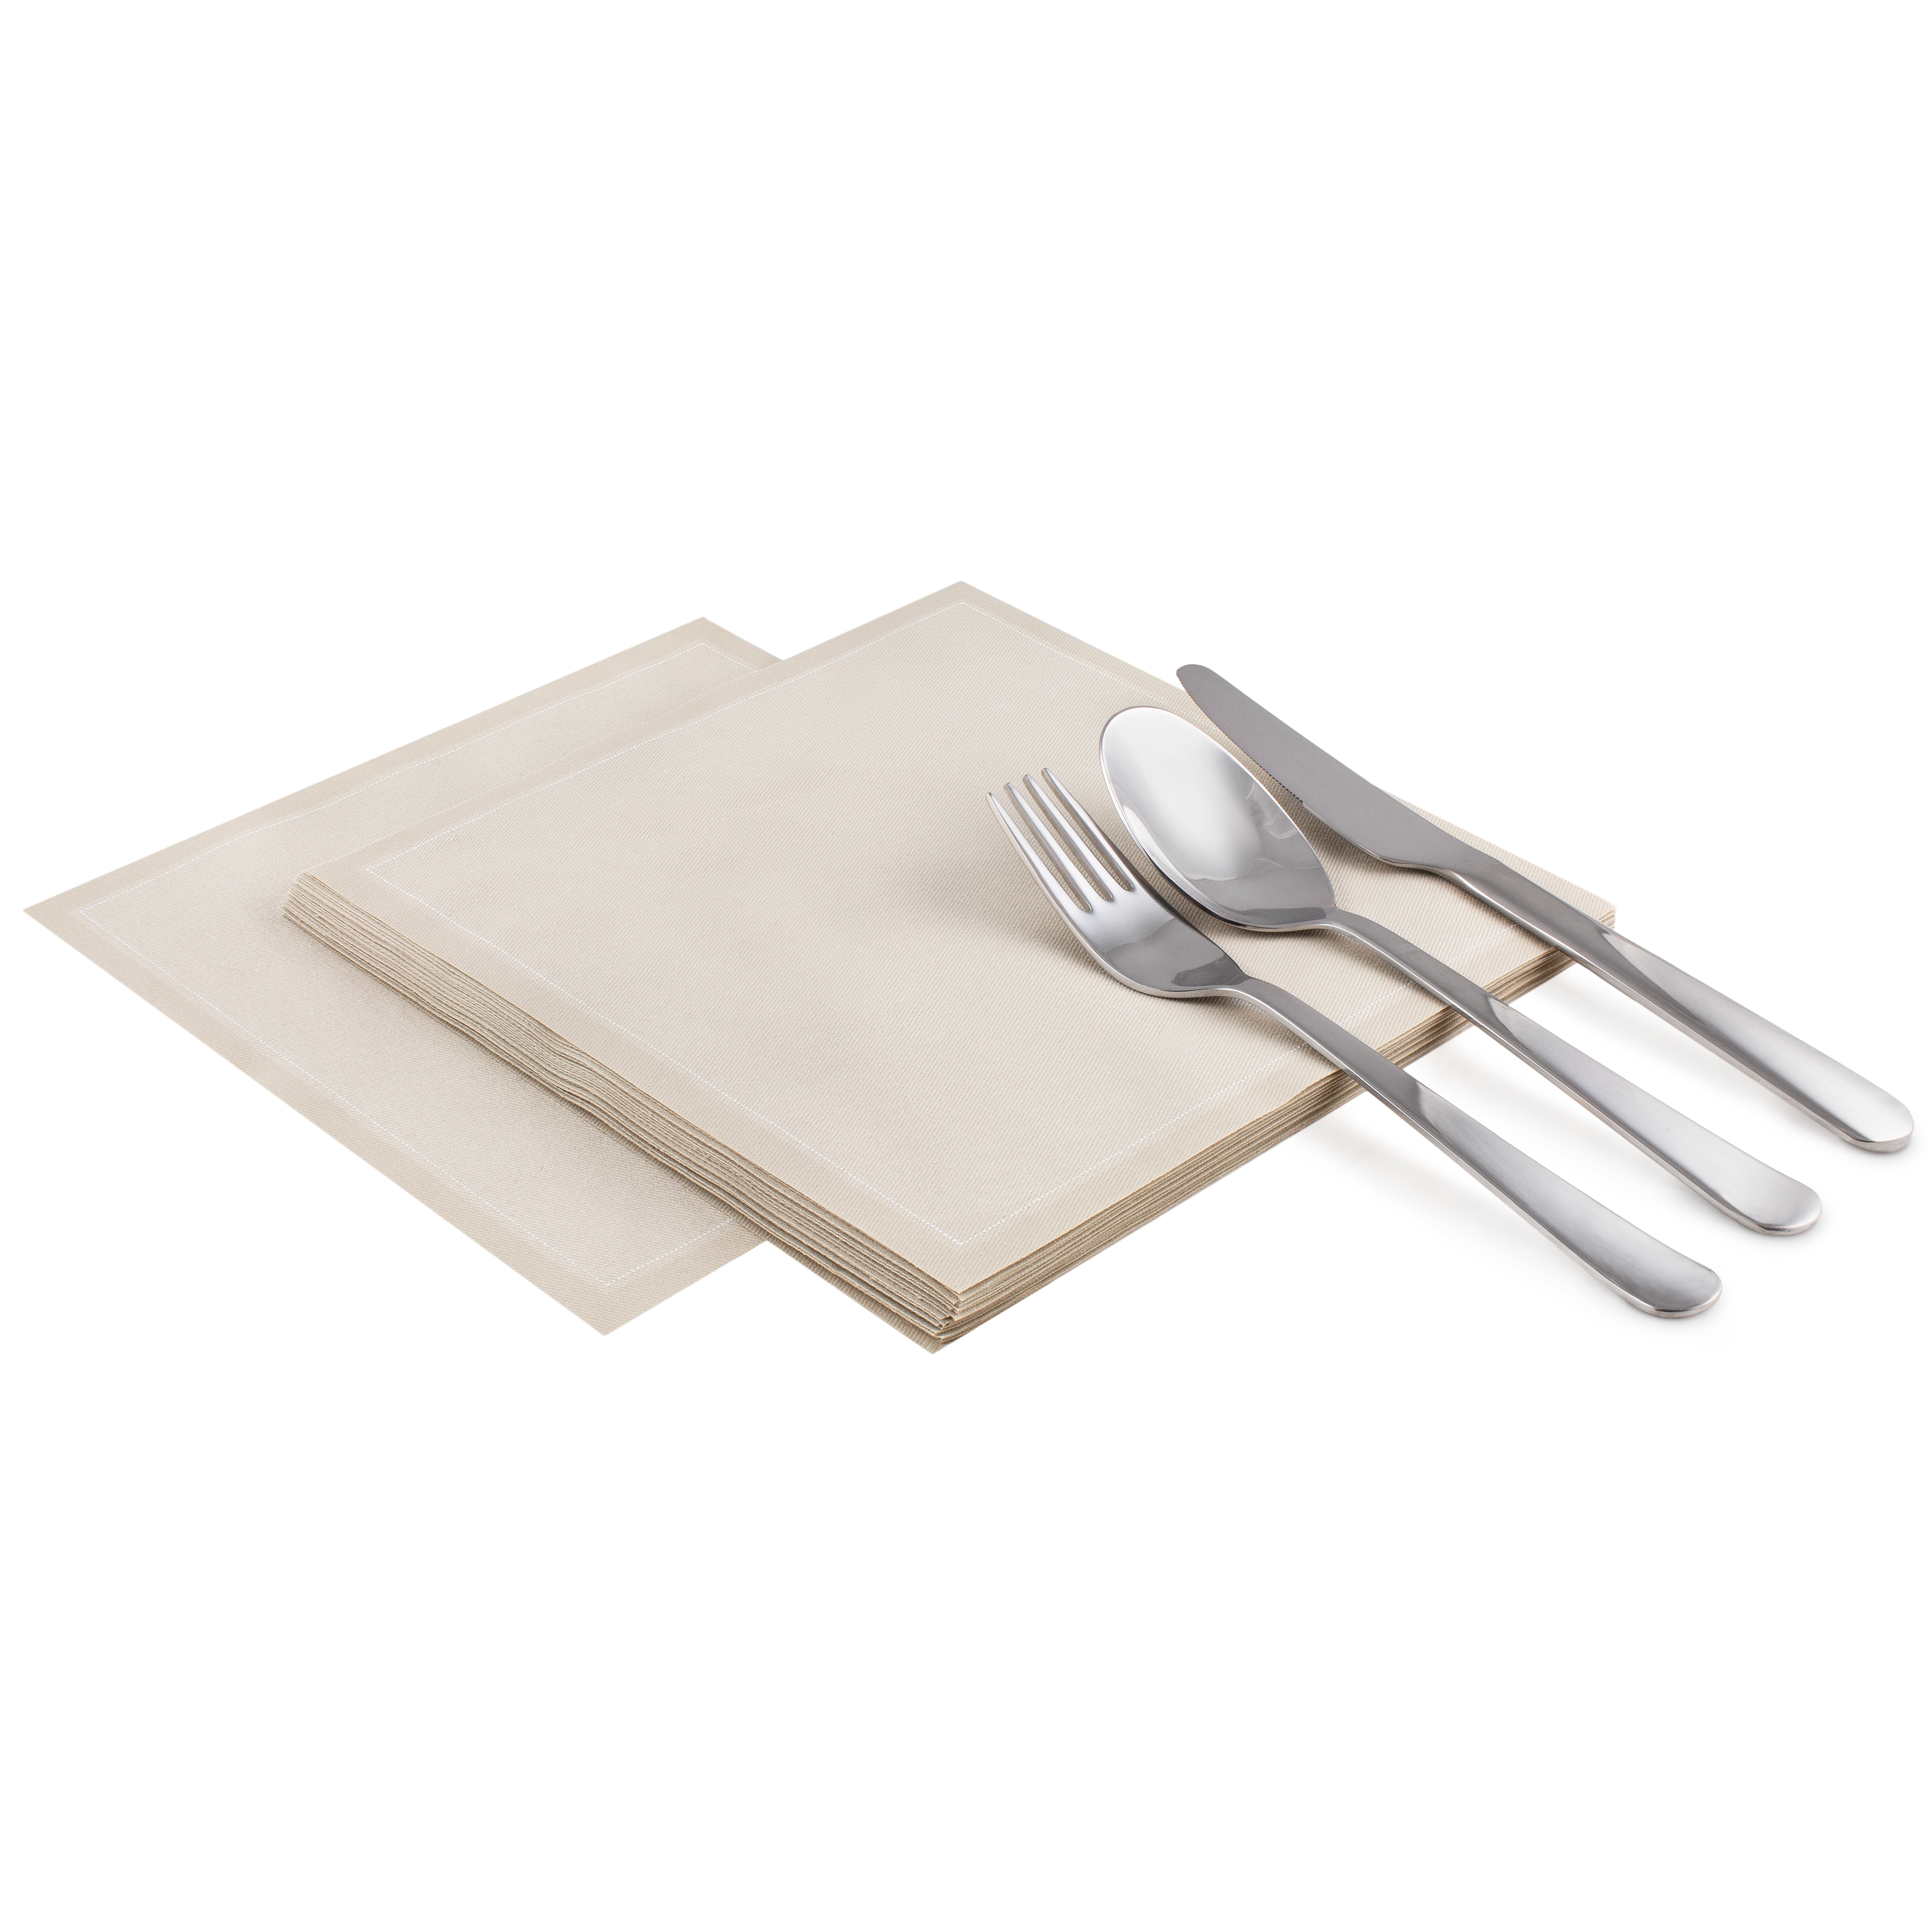 "Sand Cotton Luncheon - 8"" x 8"" - 25 units"